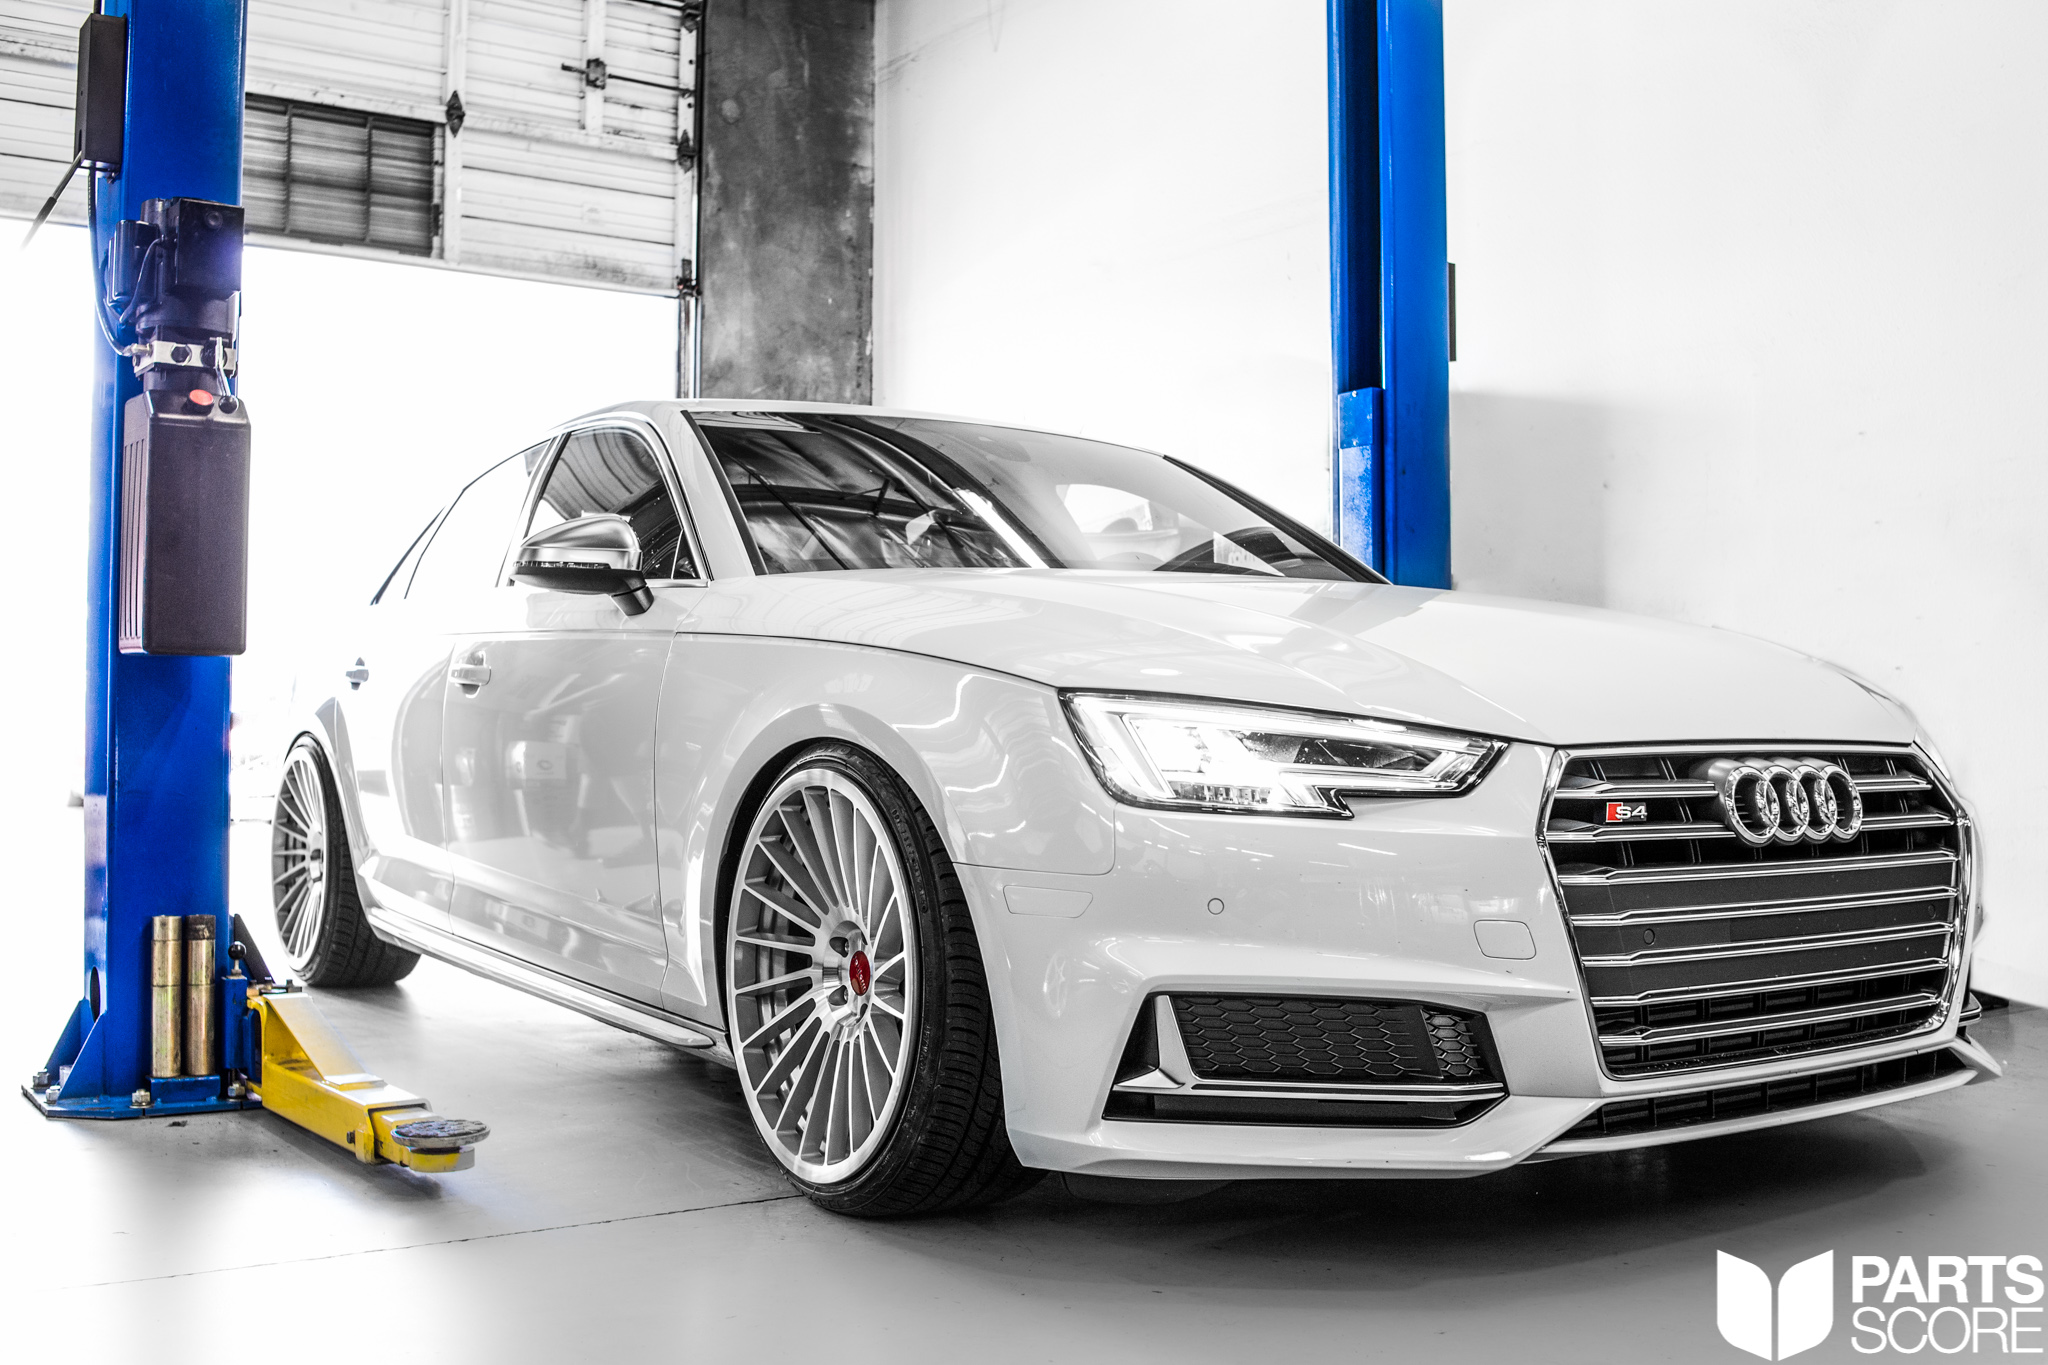 Project Parts Score Audi B9 S4 Rotiform Indt Wheels